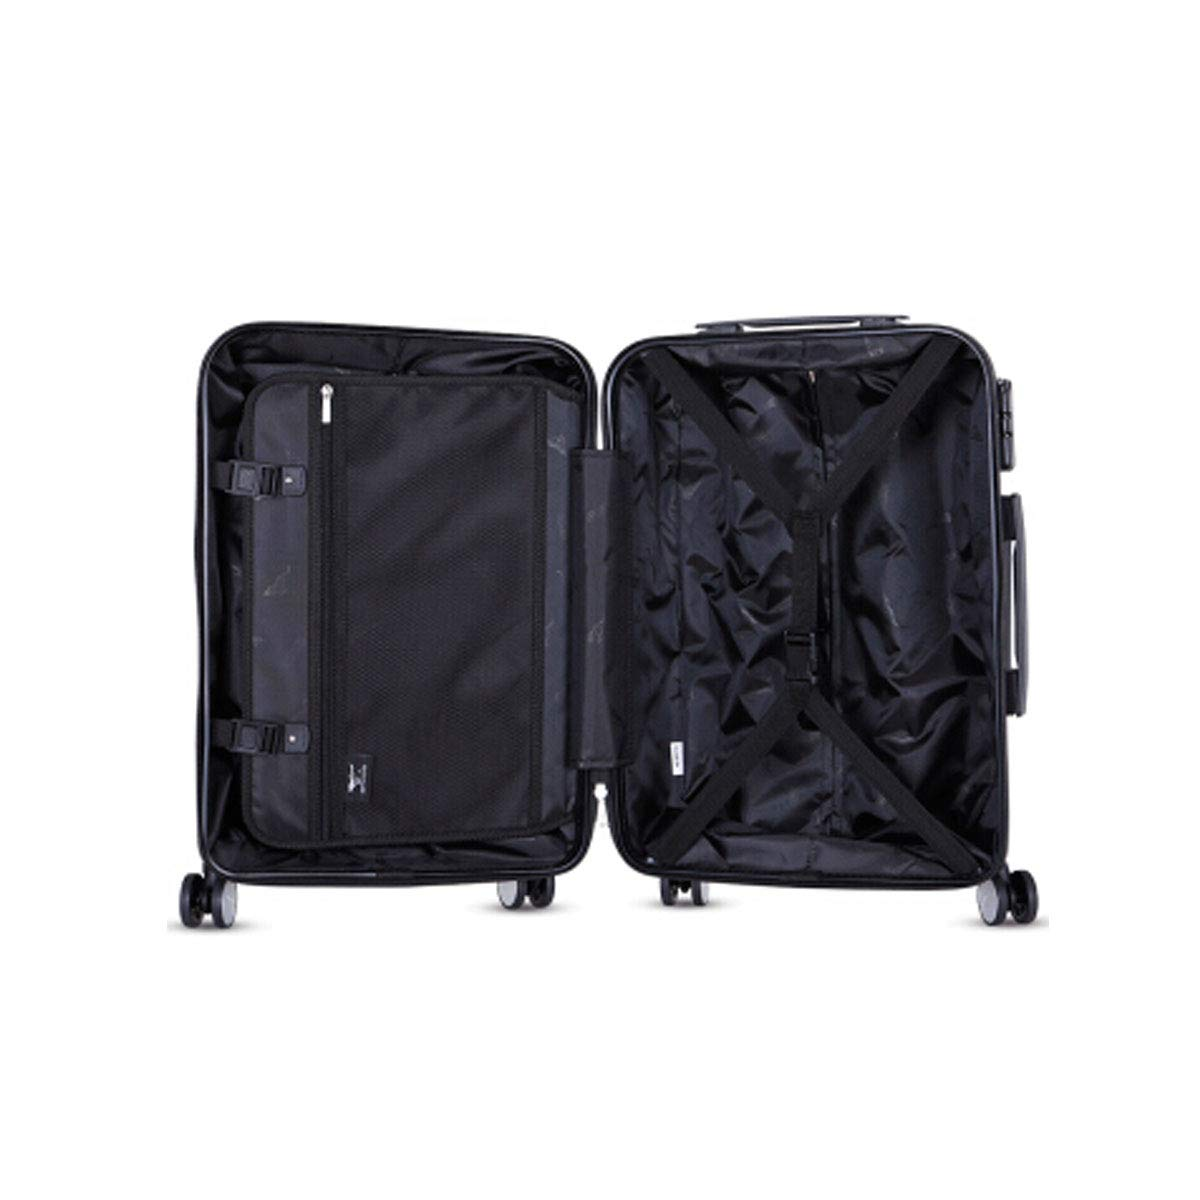 Simple Trolley case Black Muziwenti Travel Suitcase Simple Hard Travel Bag Color : Gray 24 inches The Latest Style Travel Organizer